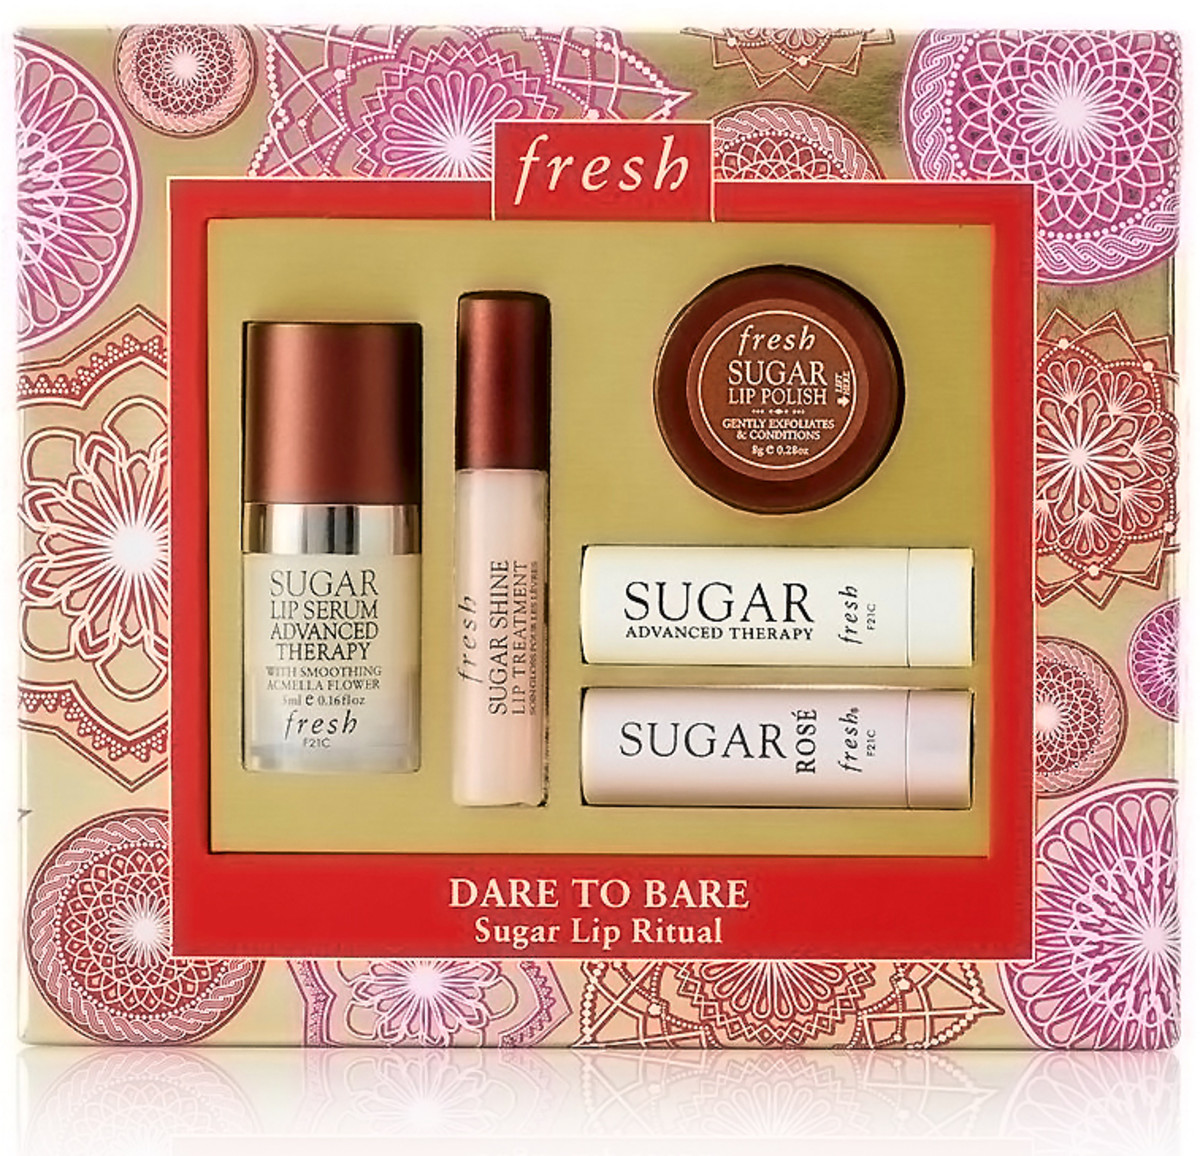 fresh dare to bare sugar lip ritual kit